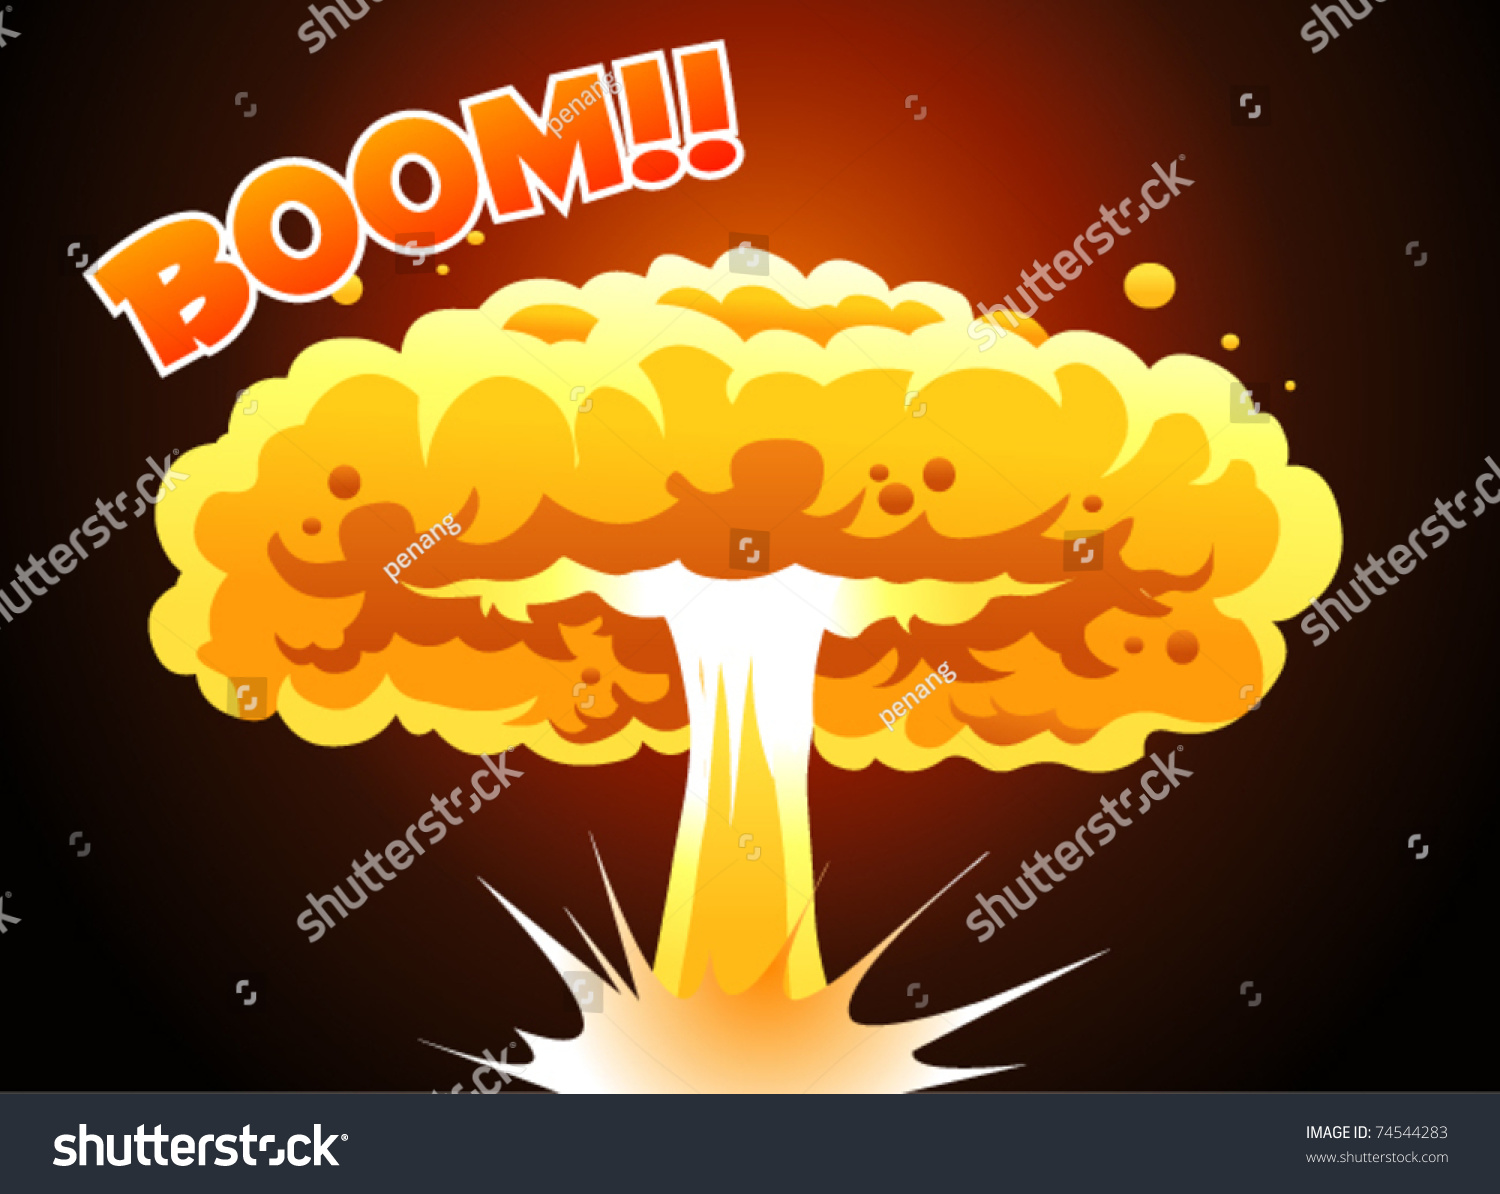 boom explode stock vector 74544283 shutterstock dynamite clip art free images dynamite clip art black and white